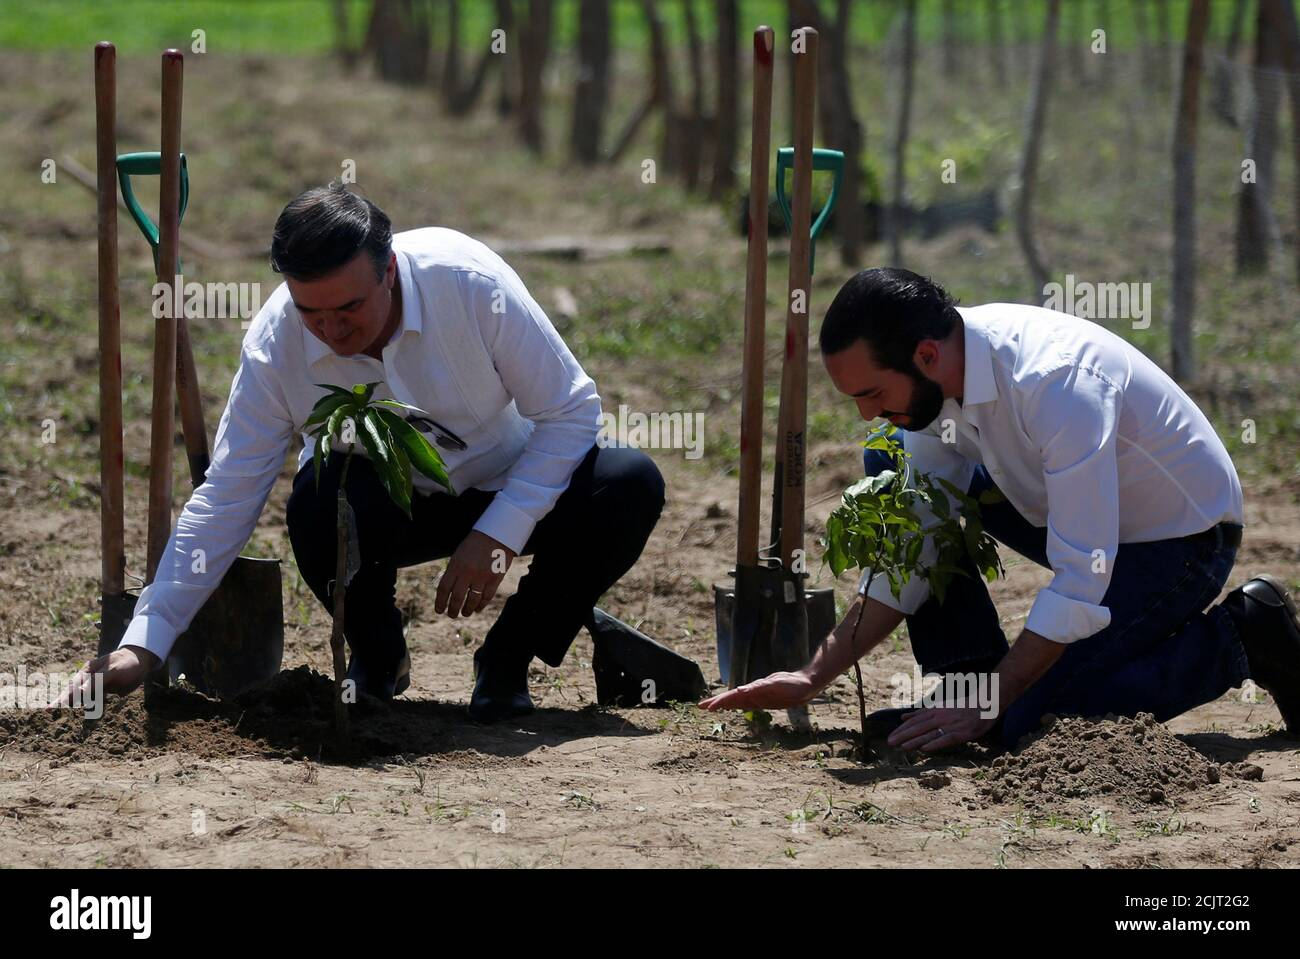 """REFILE - CORRECTING GRAMMAR El Salvador's President Nayib Bukele and Mexico's Foreign Minister Marcelo Ebrard participate in a ceremony as part of the new migration plan """"Sembrando Vida"""", between Mexico and Central America, in San Pedro Masahuat, El Salvador, July 19, 2019. REUTERS/Jose Cabezas Stock Photo"""